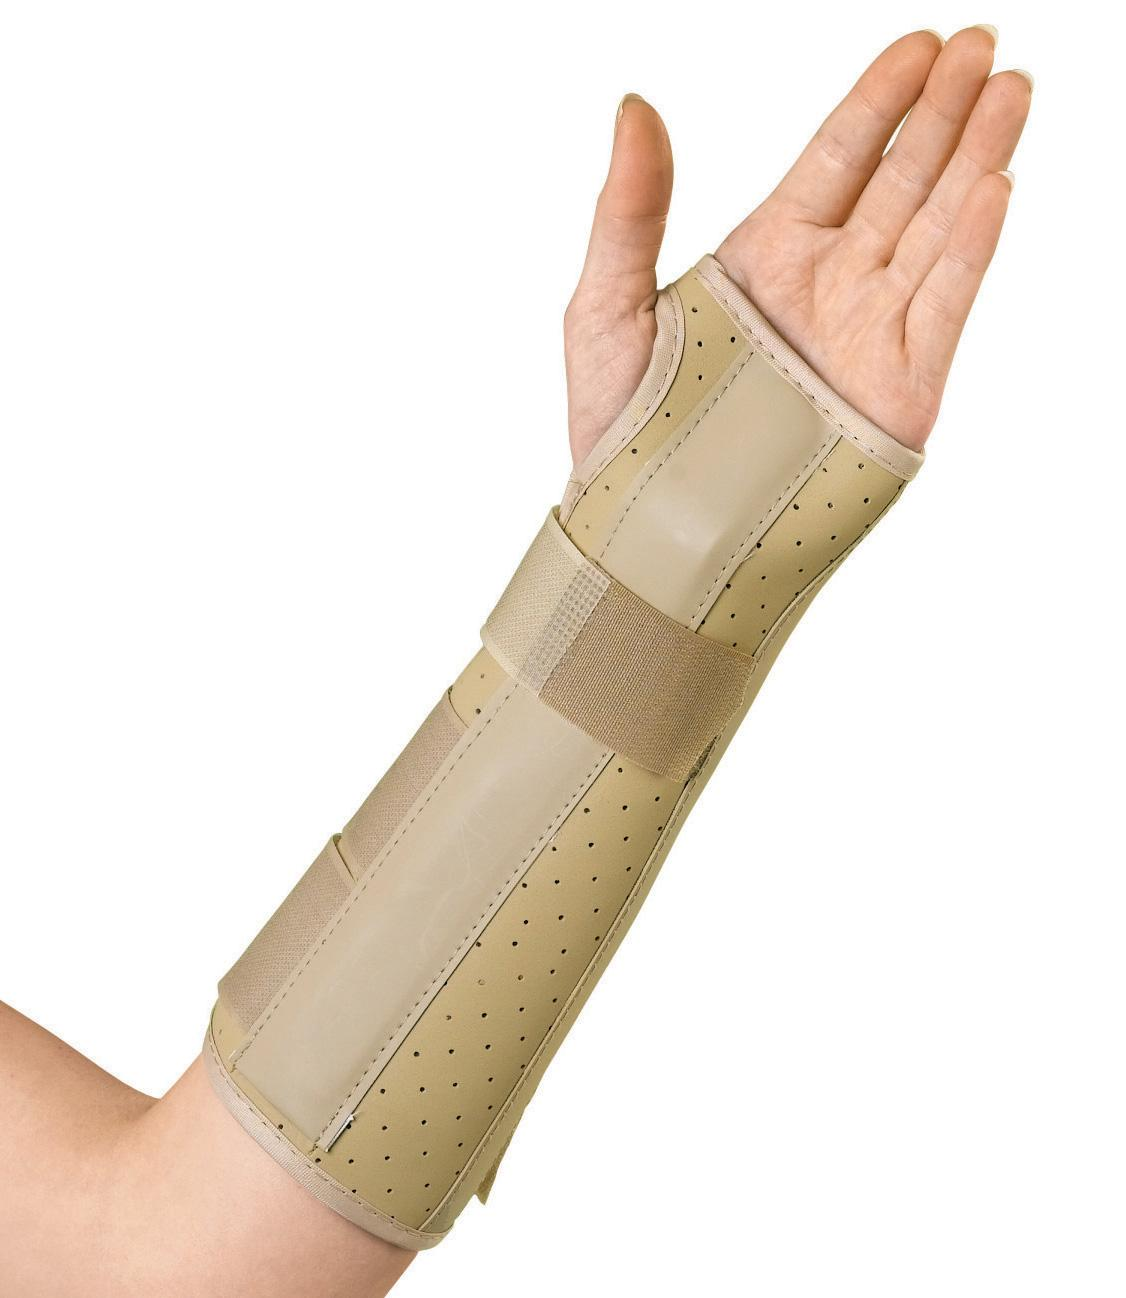 Vinyl Wrist and Forearm Splints,Large, Each